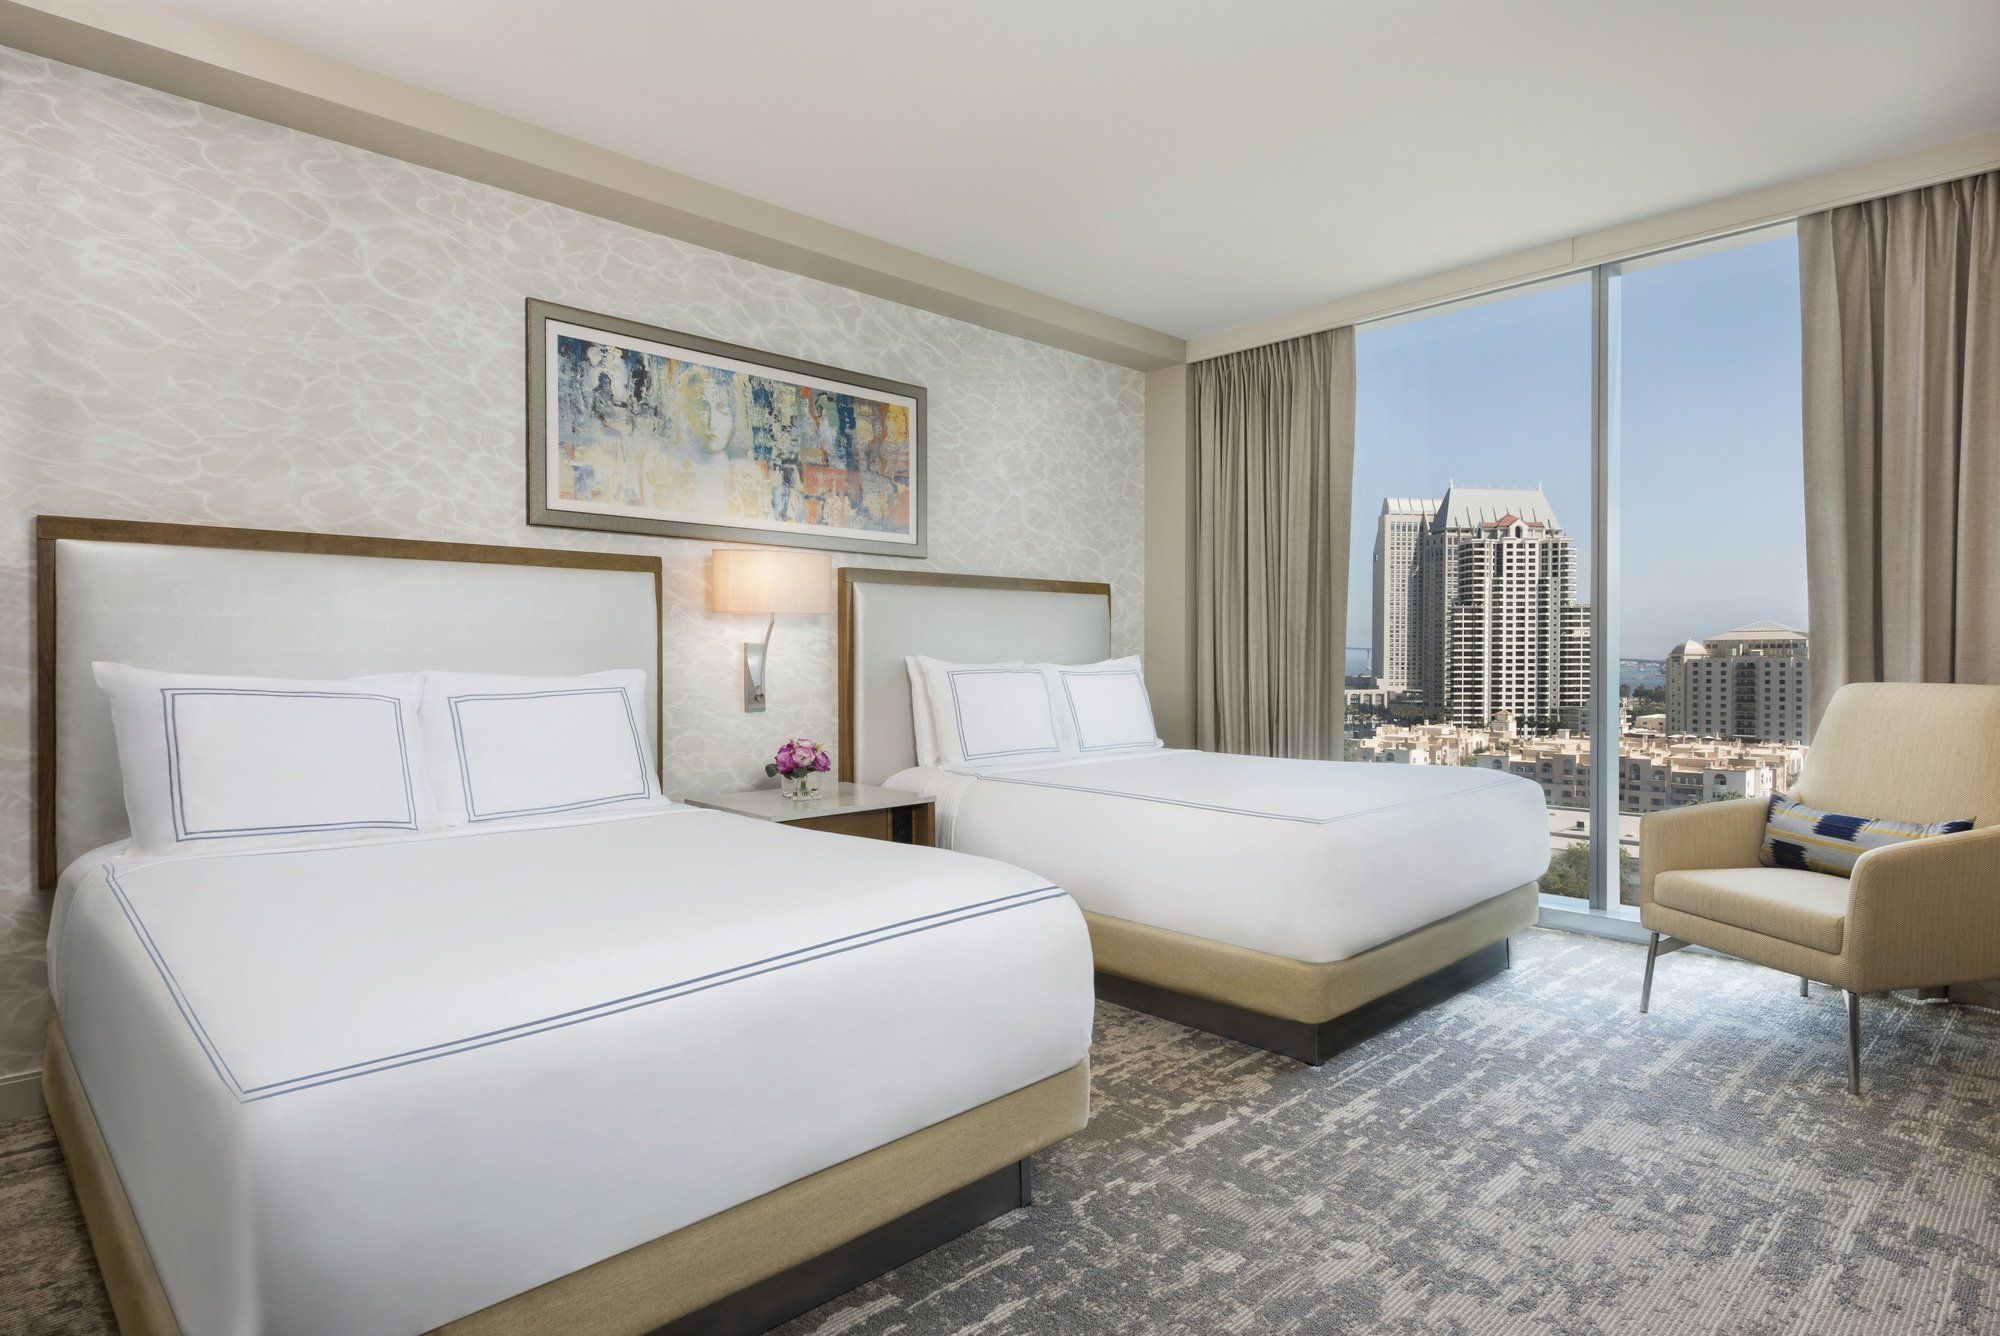 Interior of a double bed standard guest room at the InterContinental Hotel in San Diego